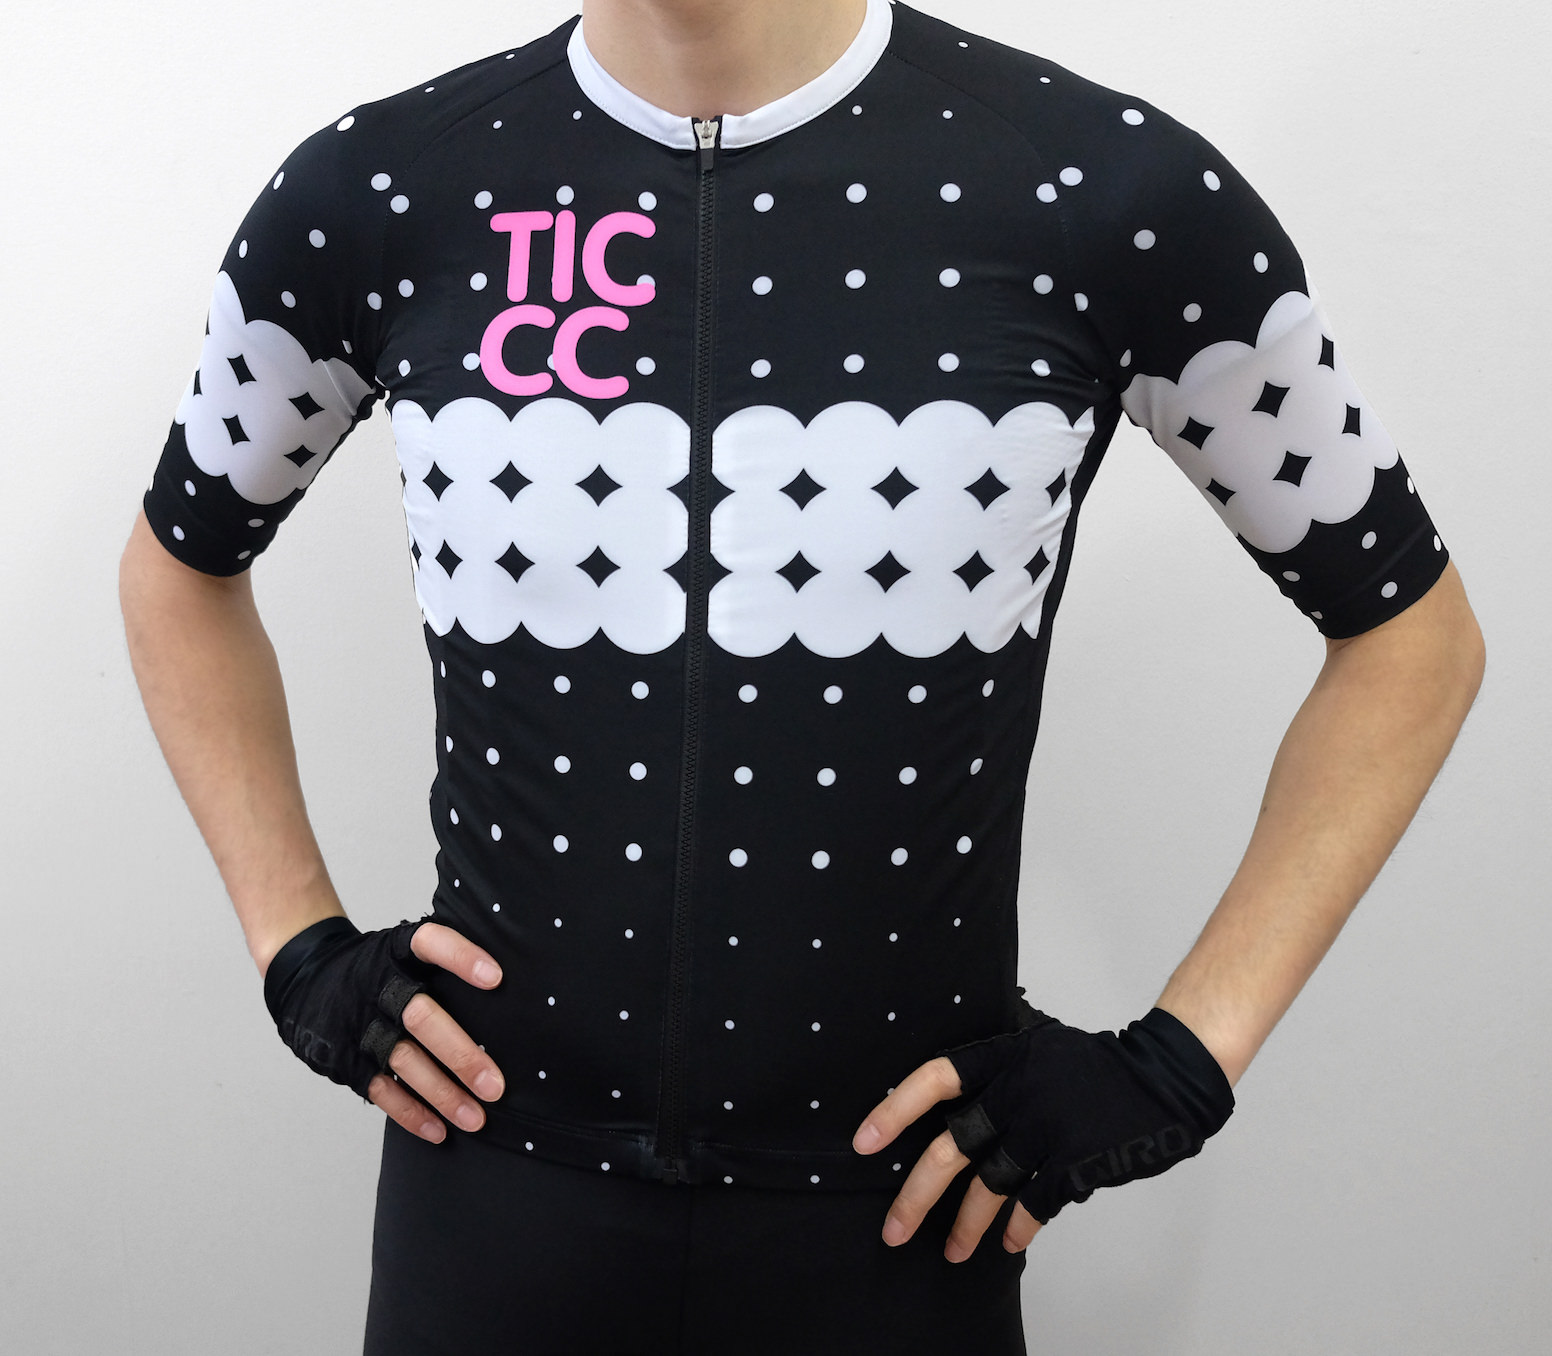 tic puncheur jersey - front